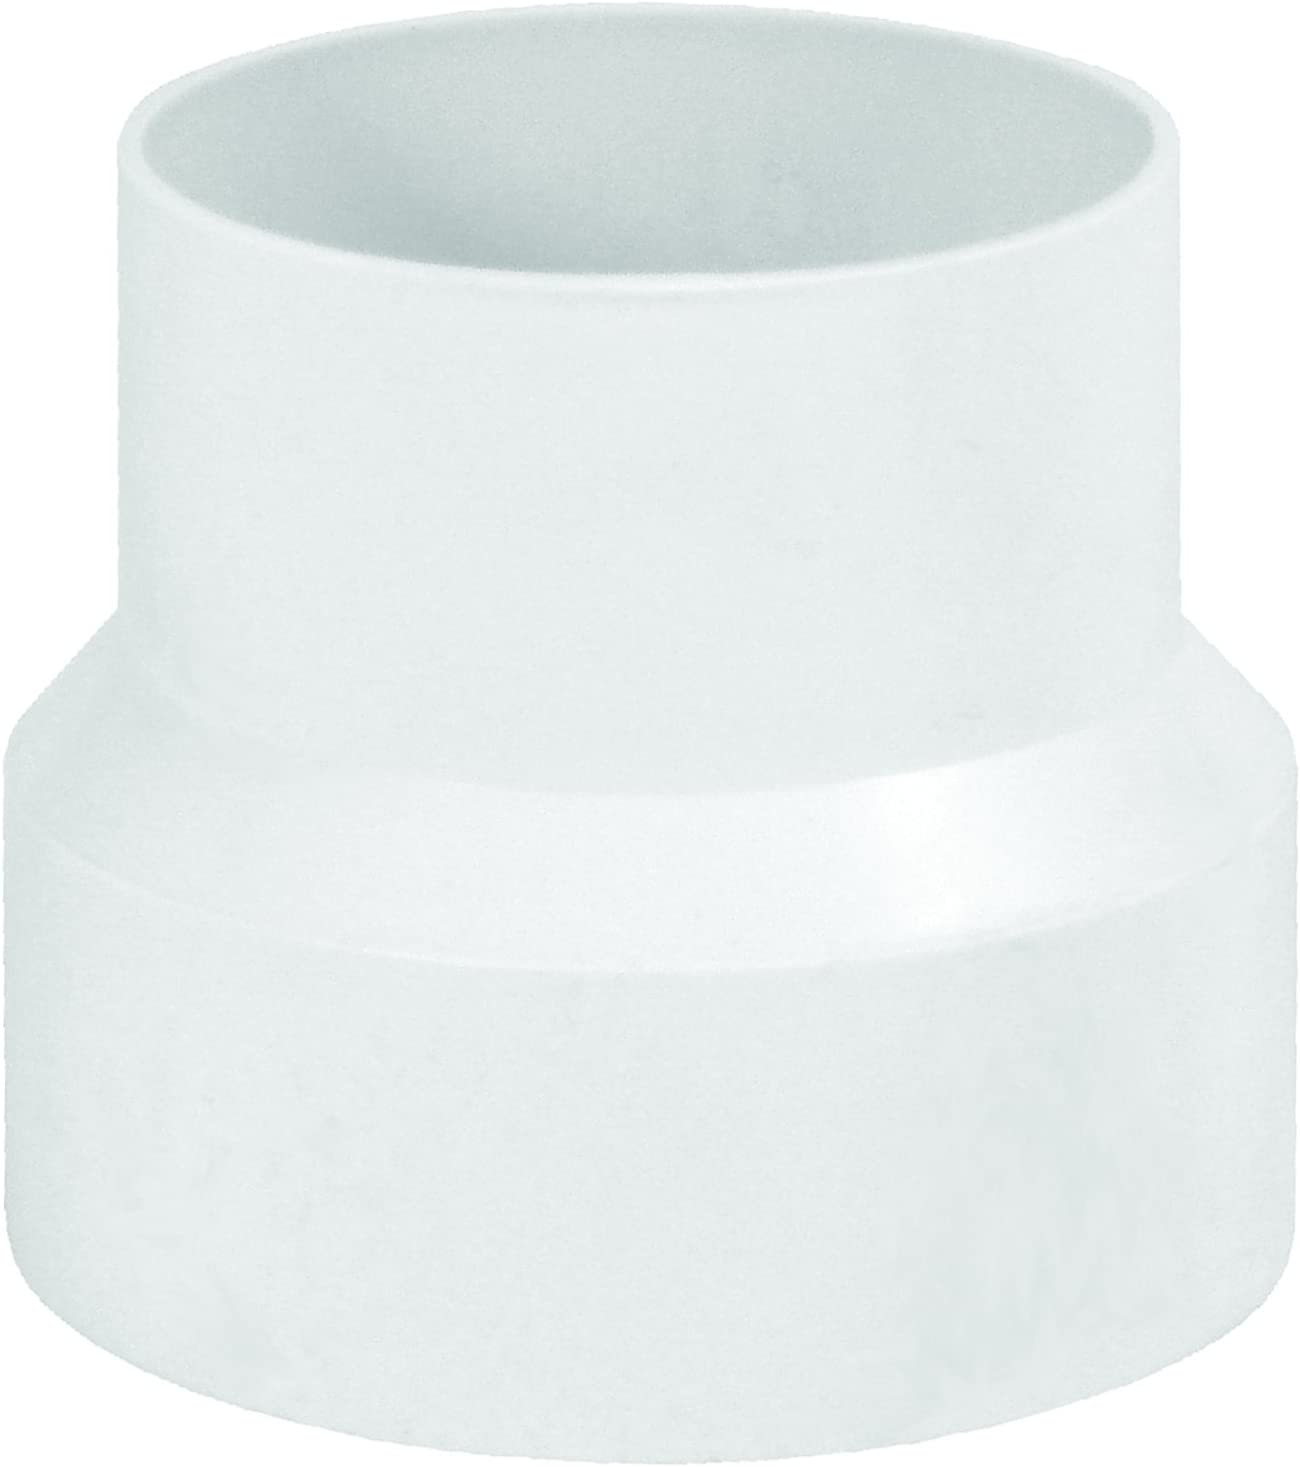 Deflecto Duct Nashville-Davidson Mall Increaser and Reducer We OFFer at cheap prices Plastic Inline Adapter Whi